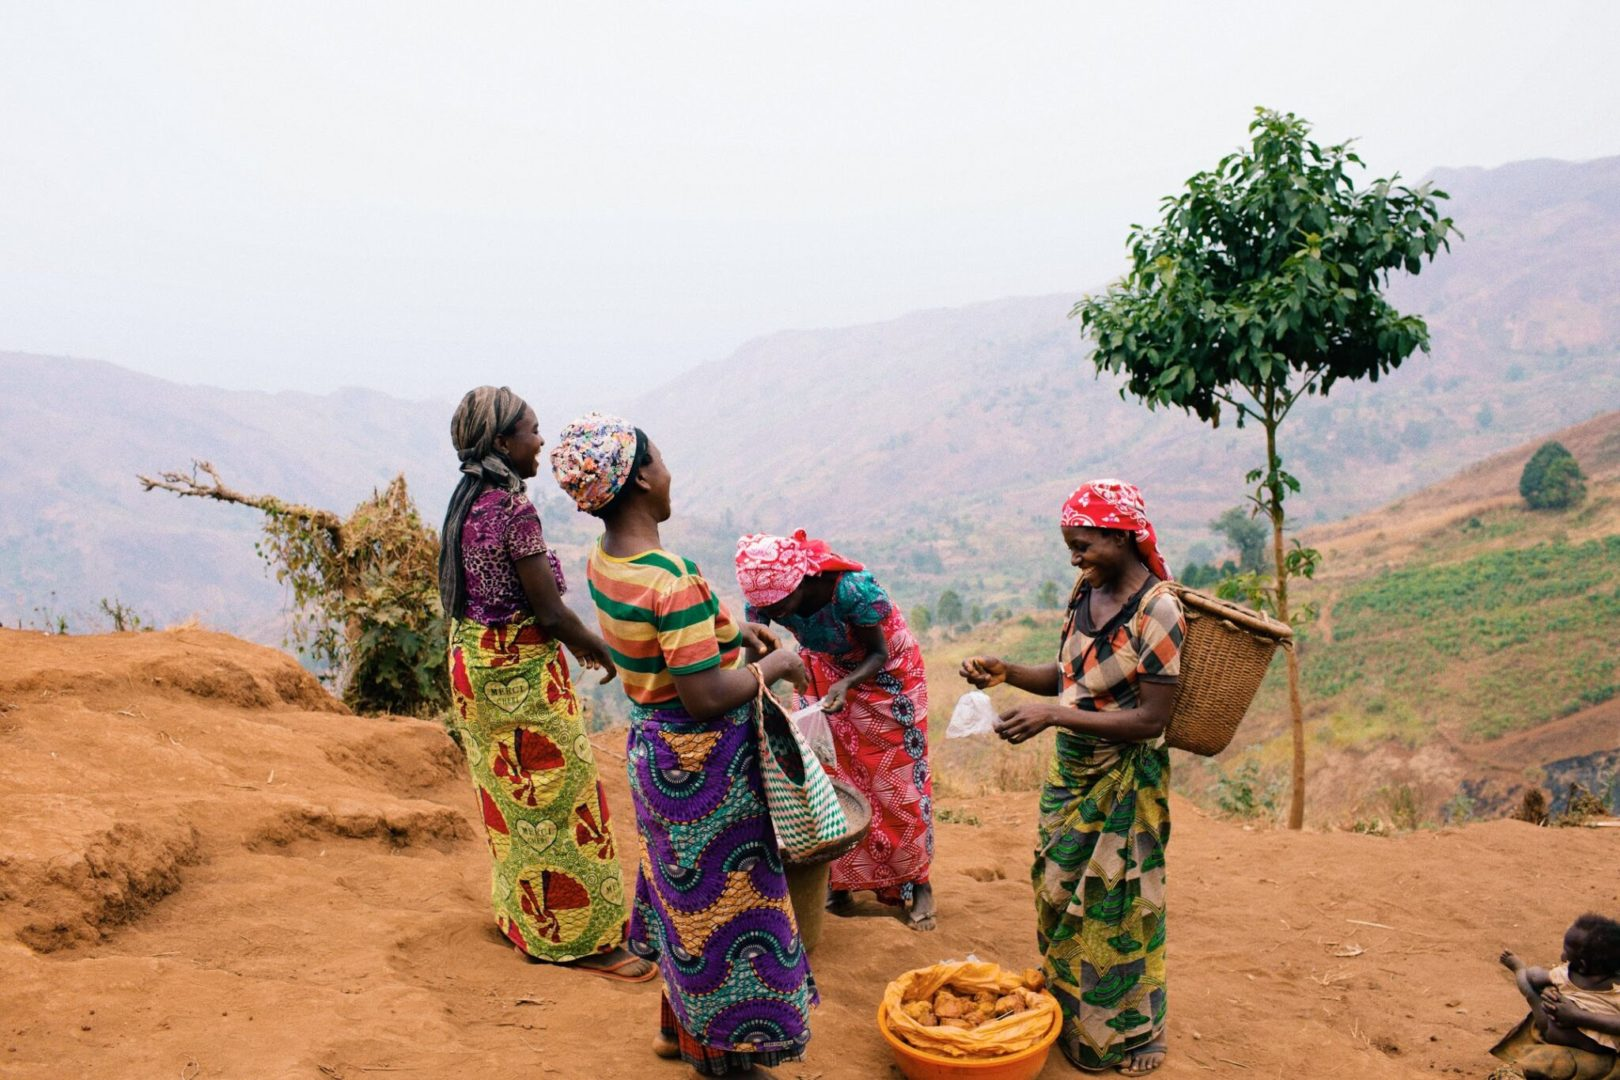 Women working together in the DR Congo